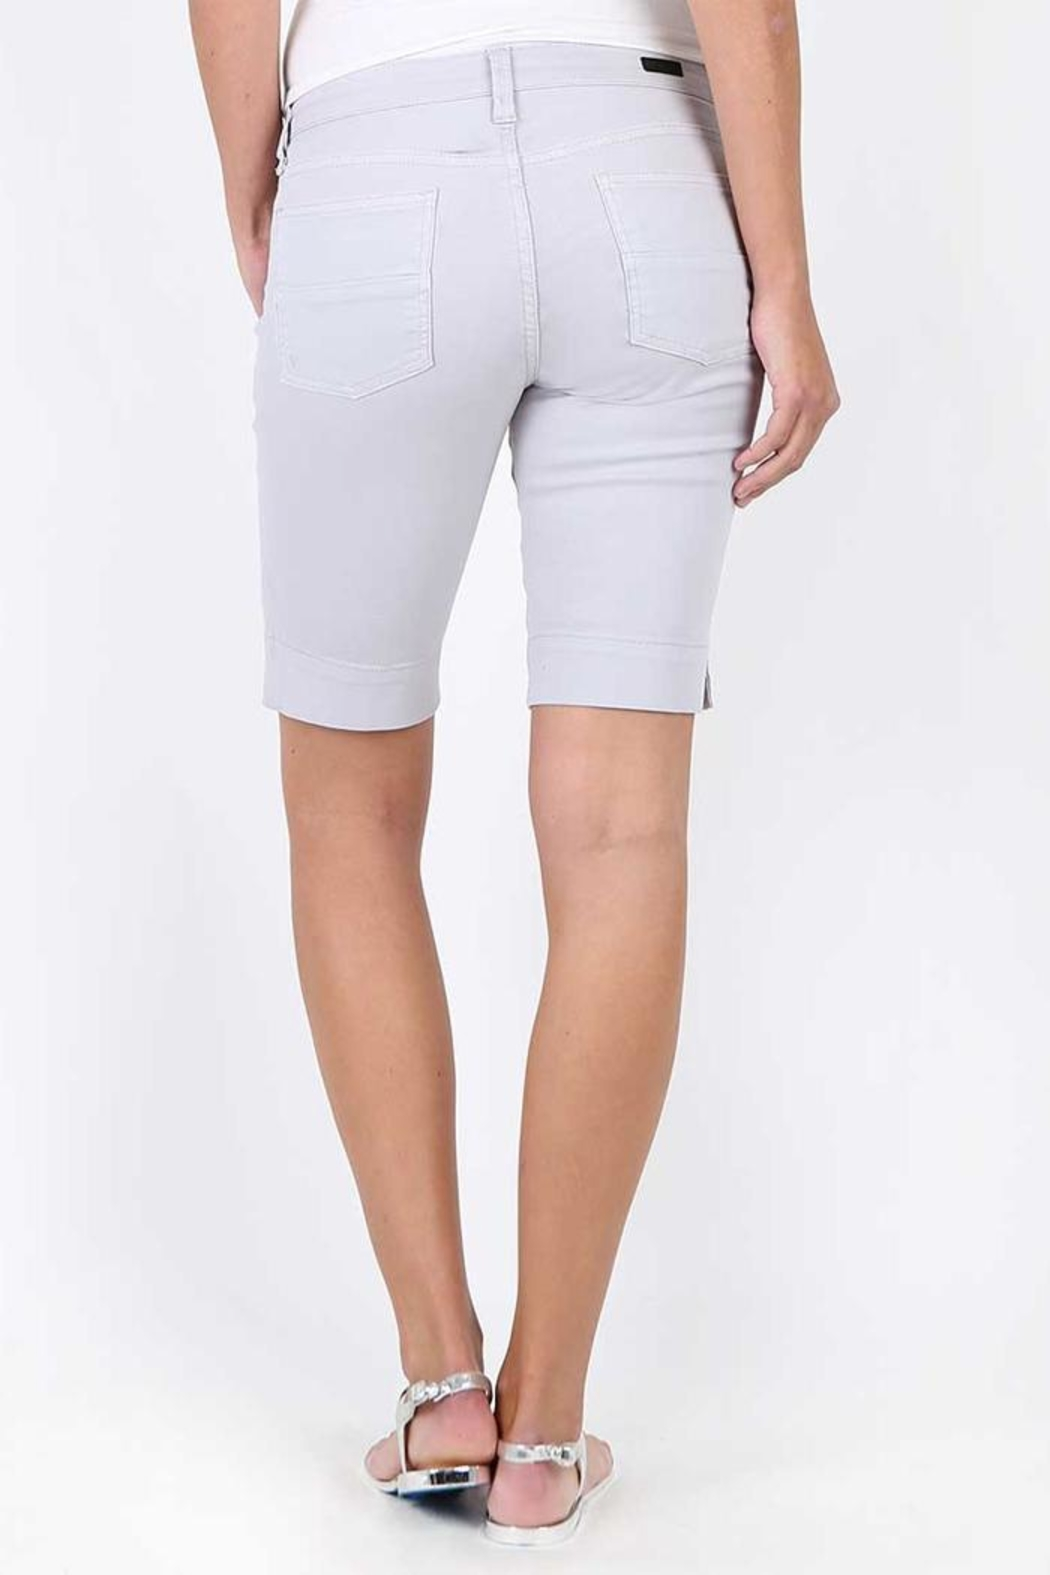 Kut from the Kloth Natalie Bermuda Short - Side Cropped Image